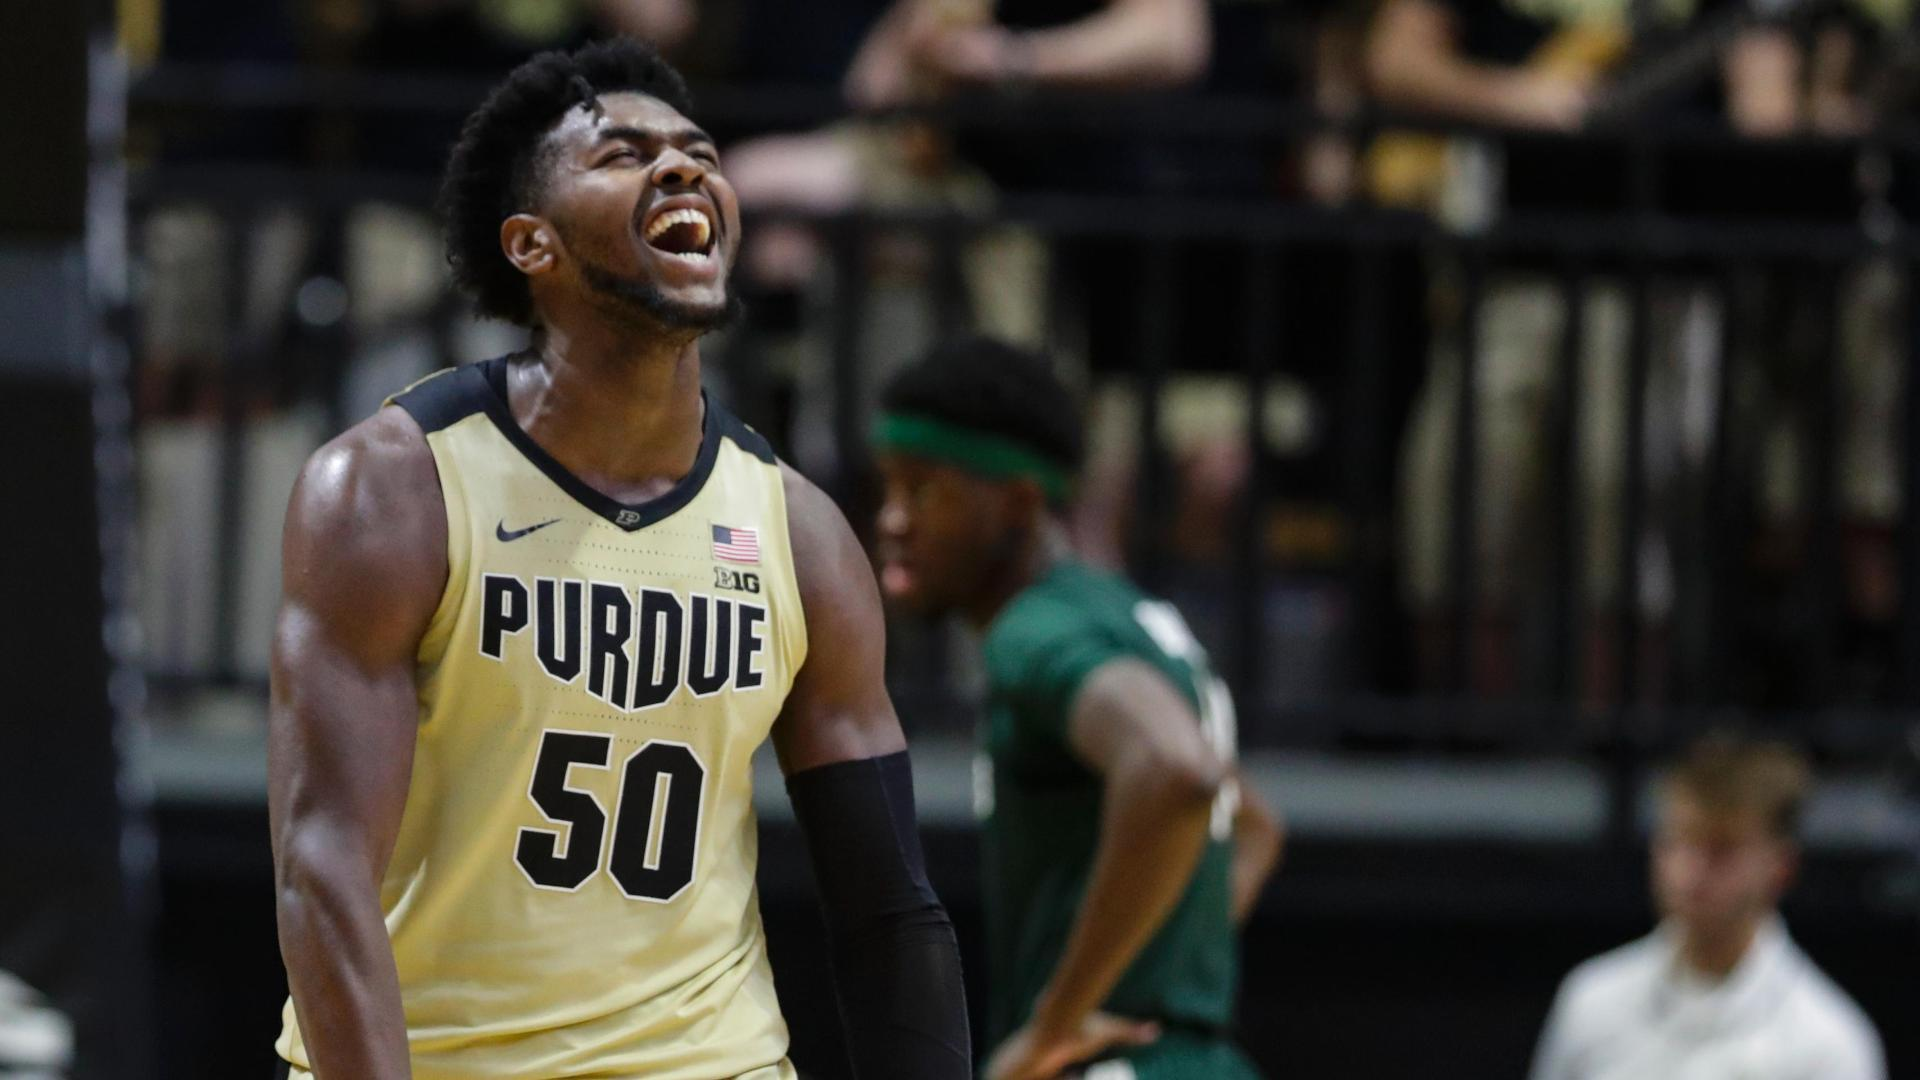 Williams scores, flexes as Purdue pours it on Michigan State